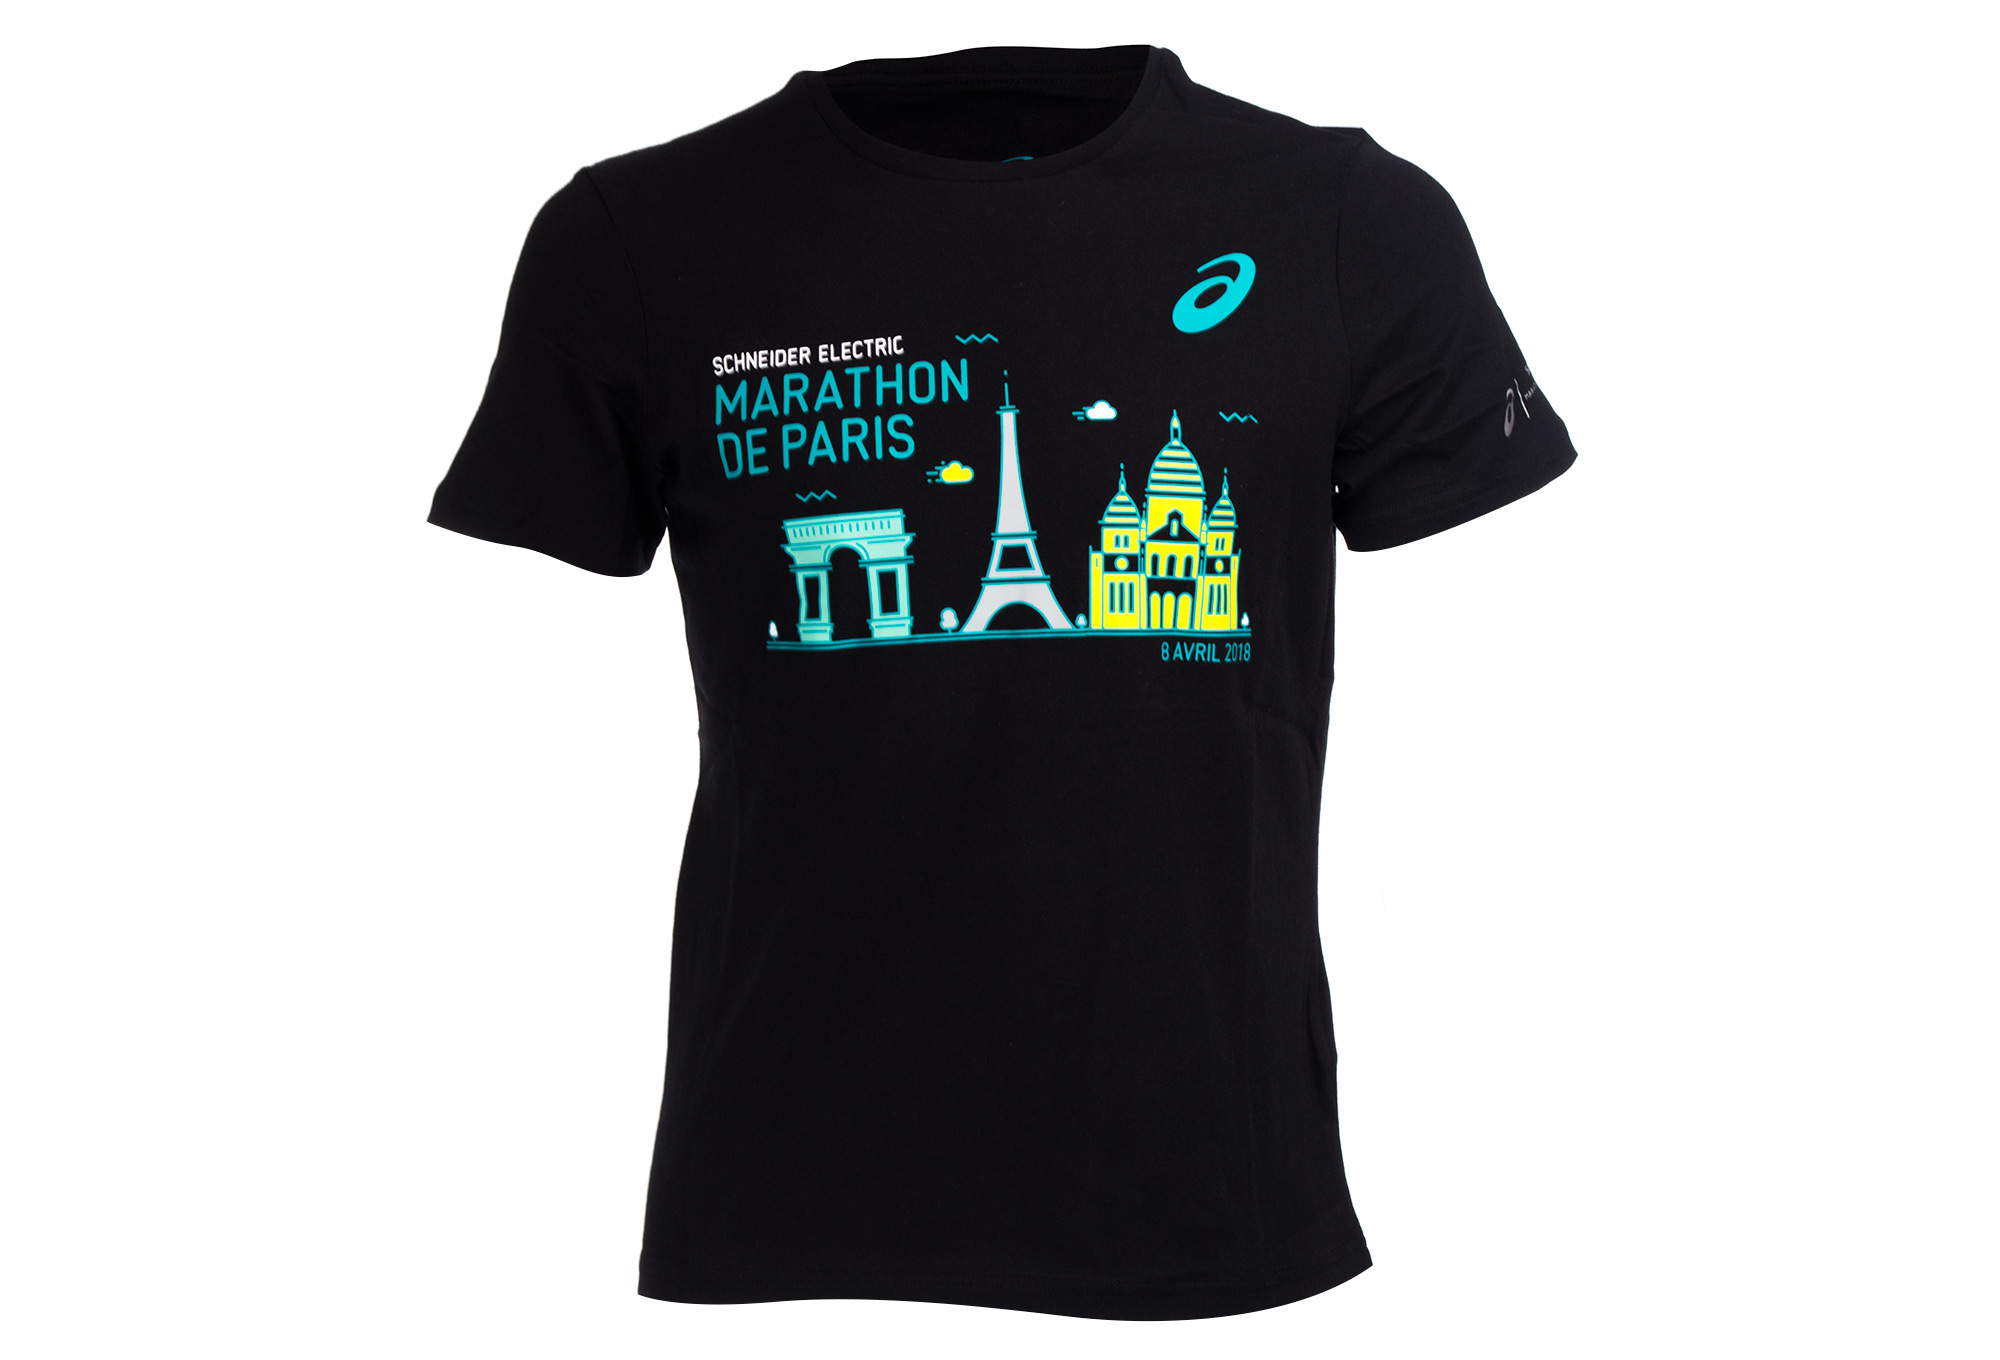 asics schneider marathon de paris 2018 t shirt performance black. Black Bedroom Furniture Sets. Home Design Ideas